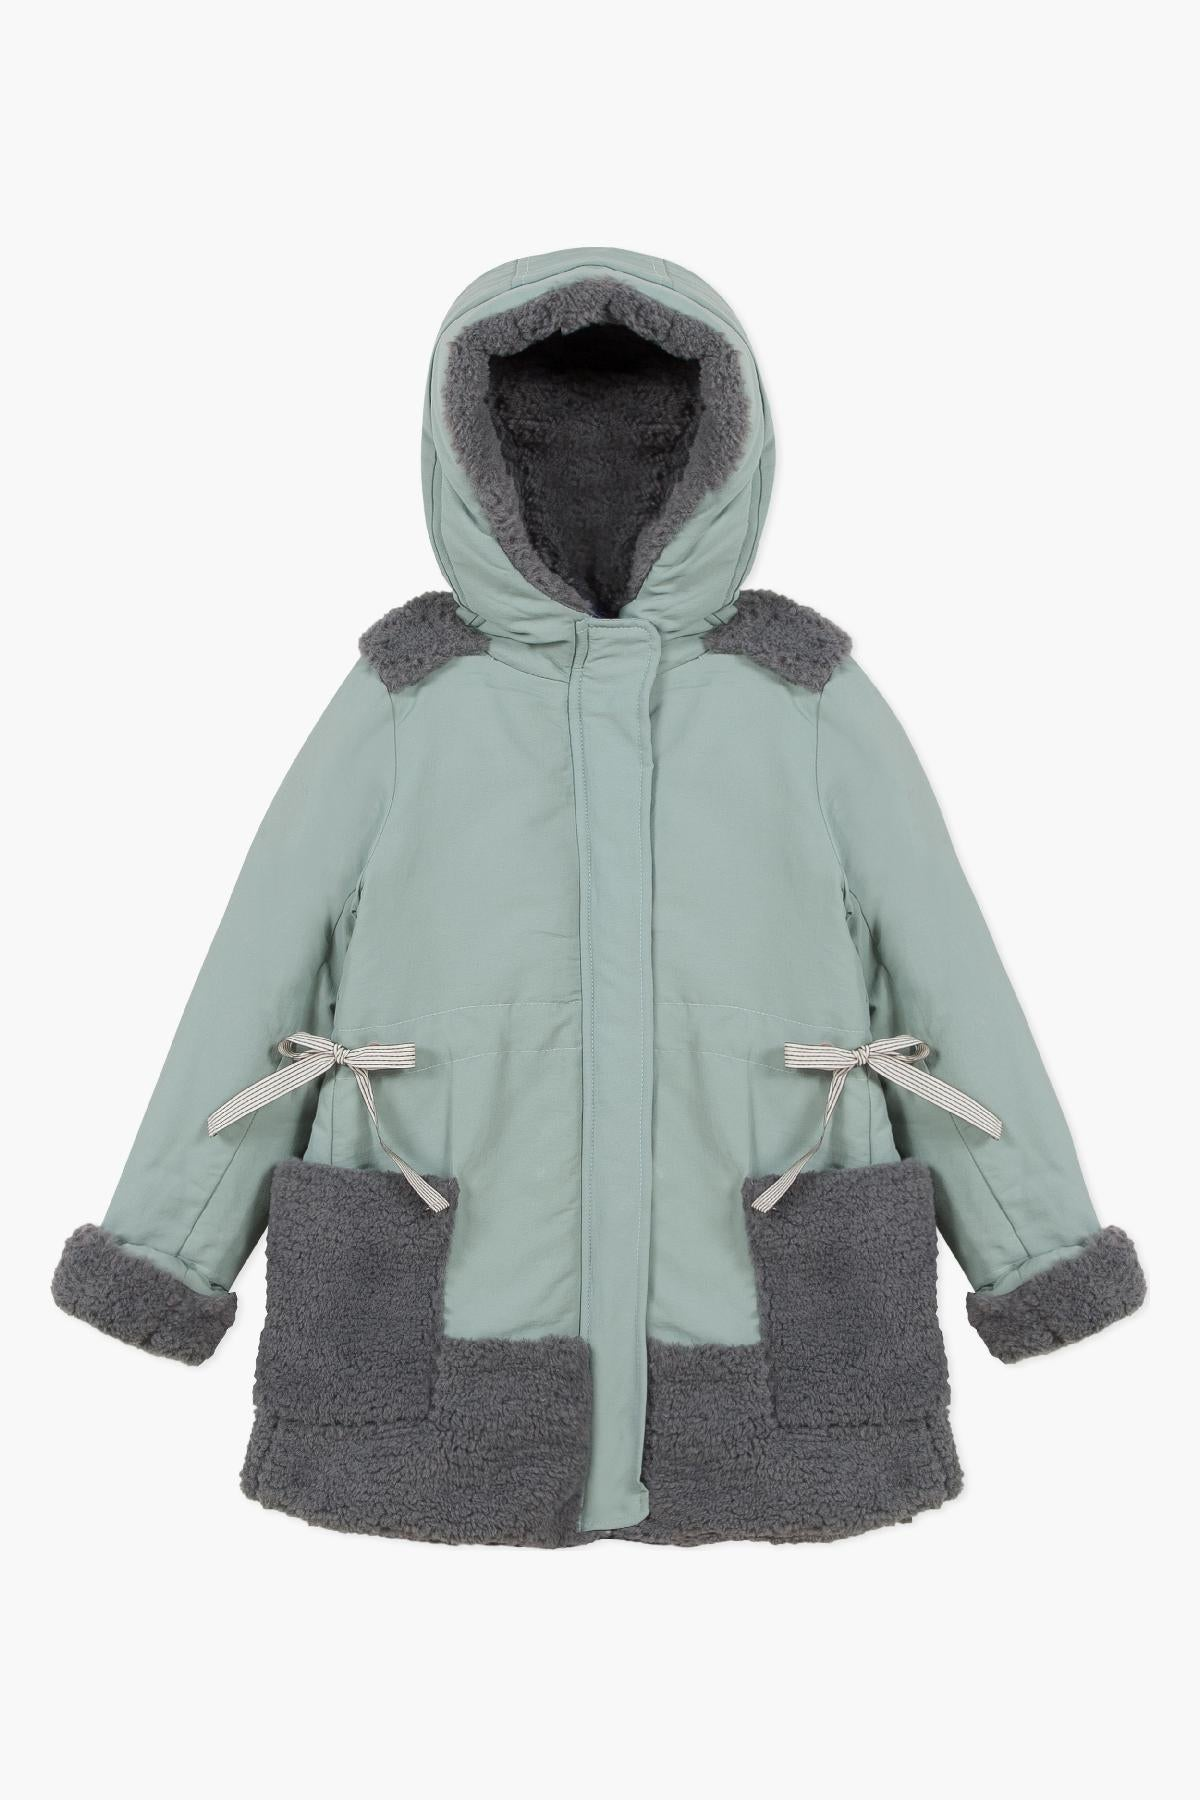 Jean Bourget Lagoon Blue Girls Parka